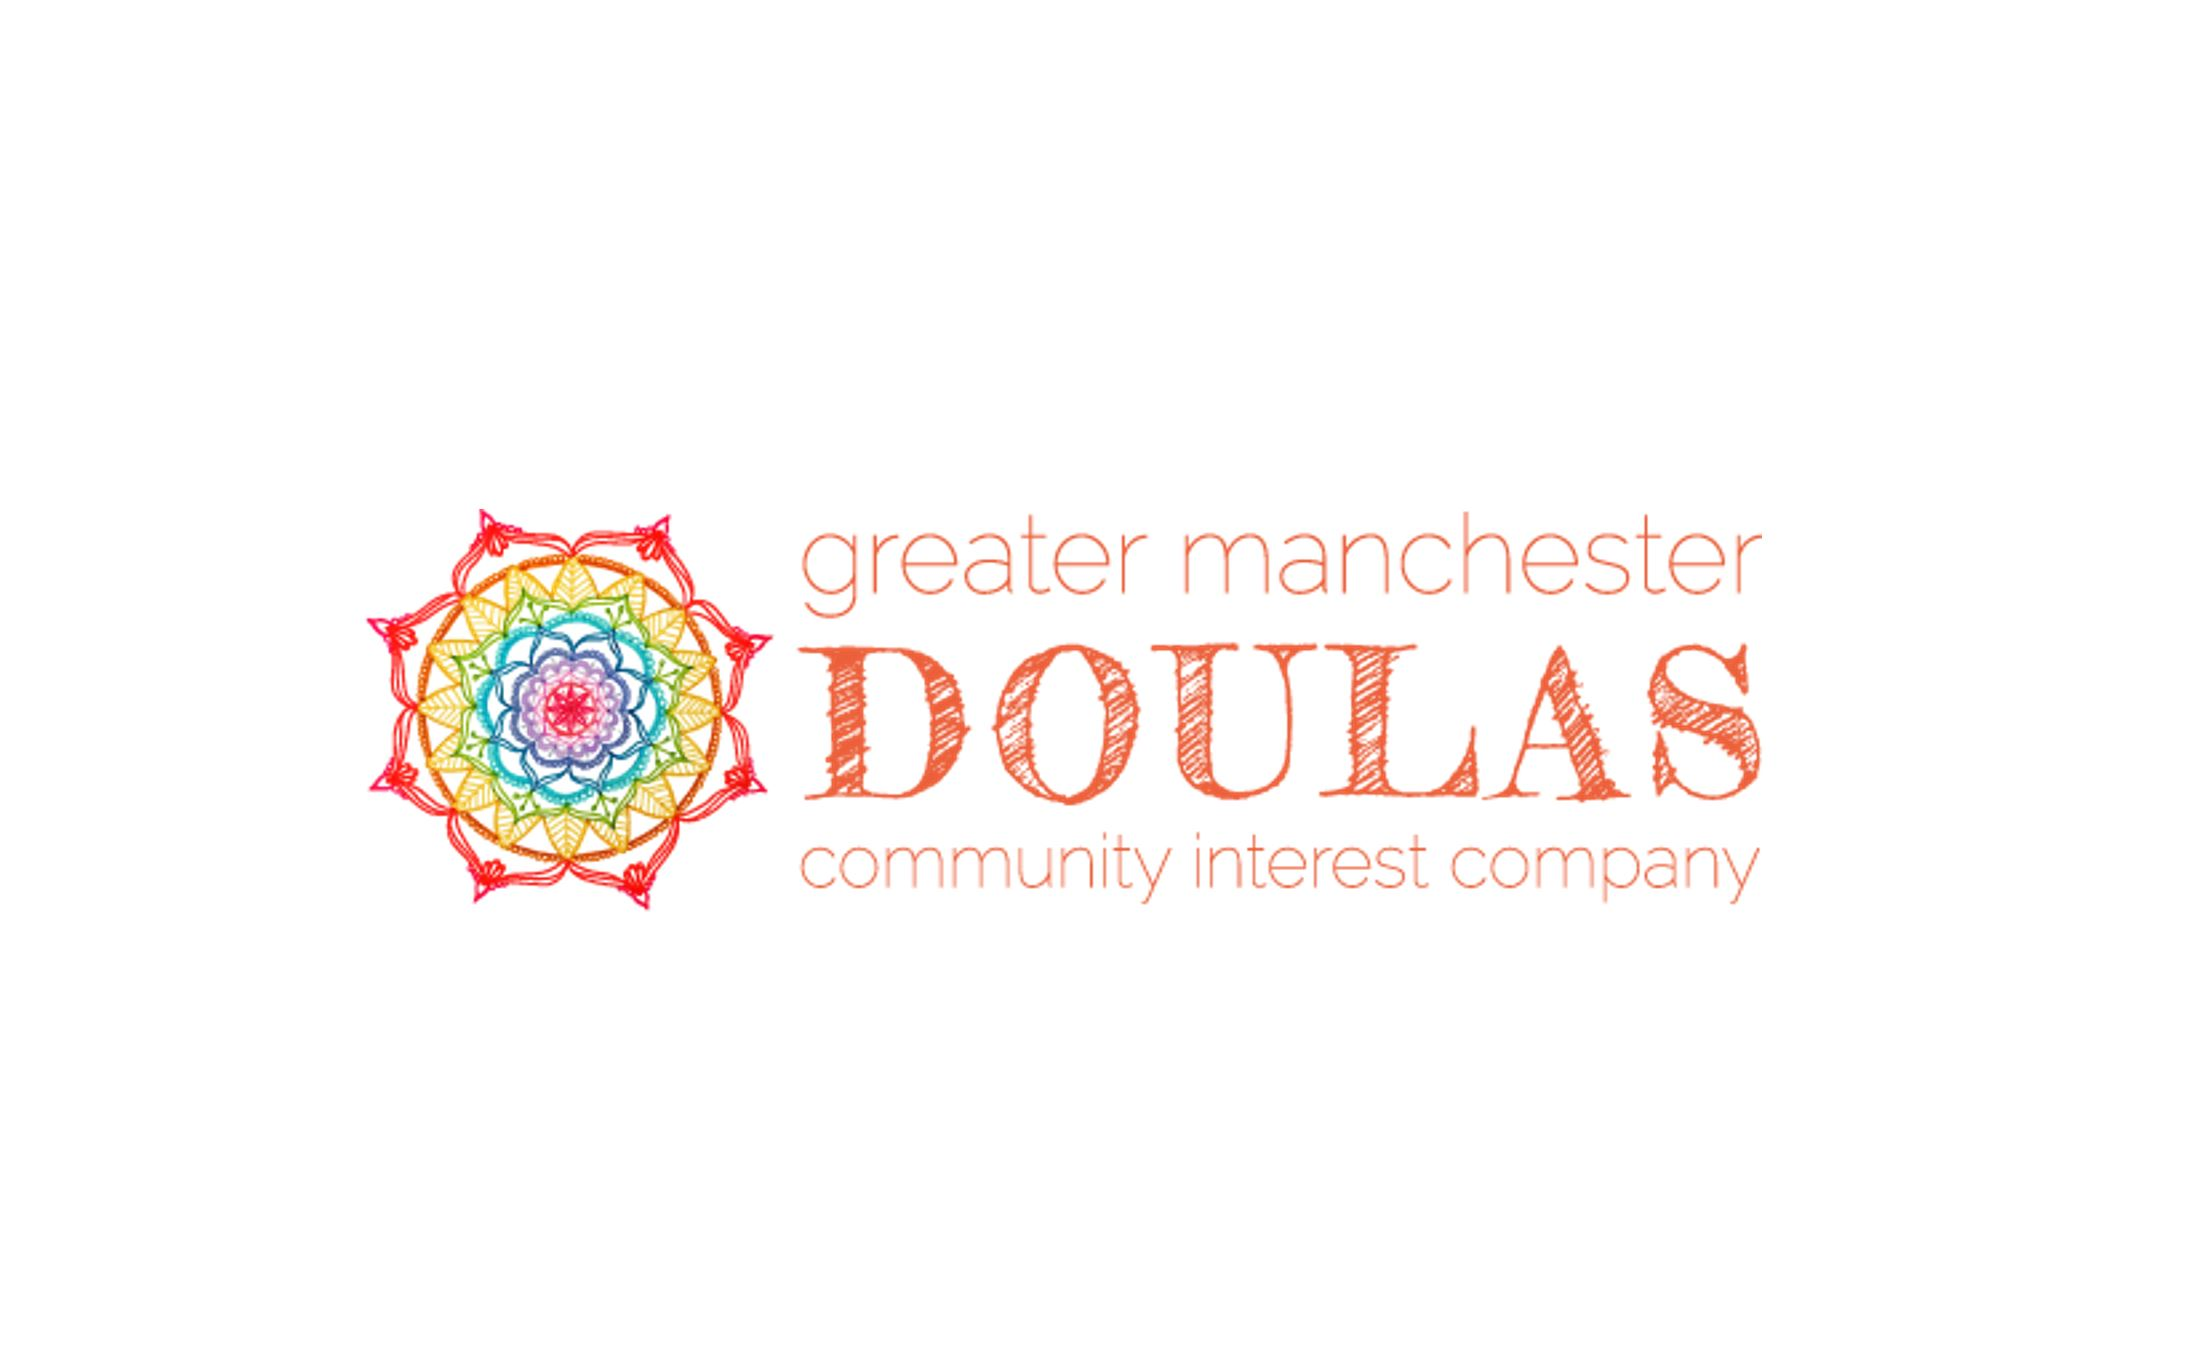 GREATER MANCHESTER DOULAS